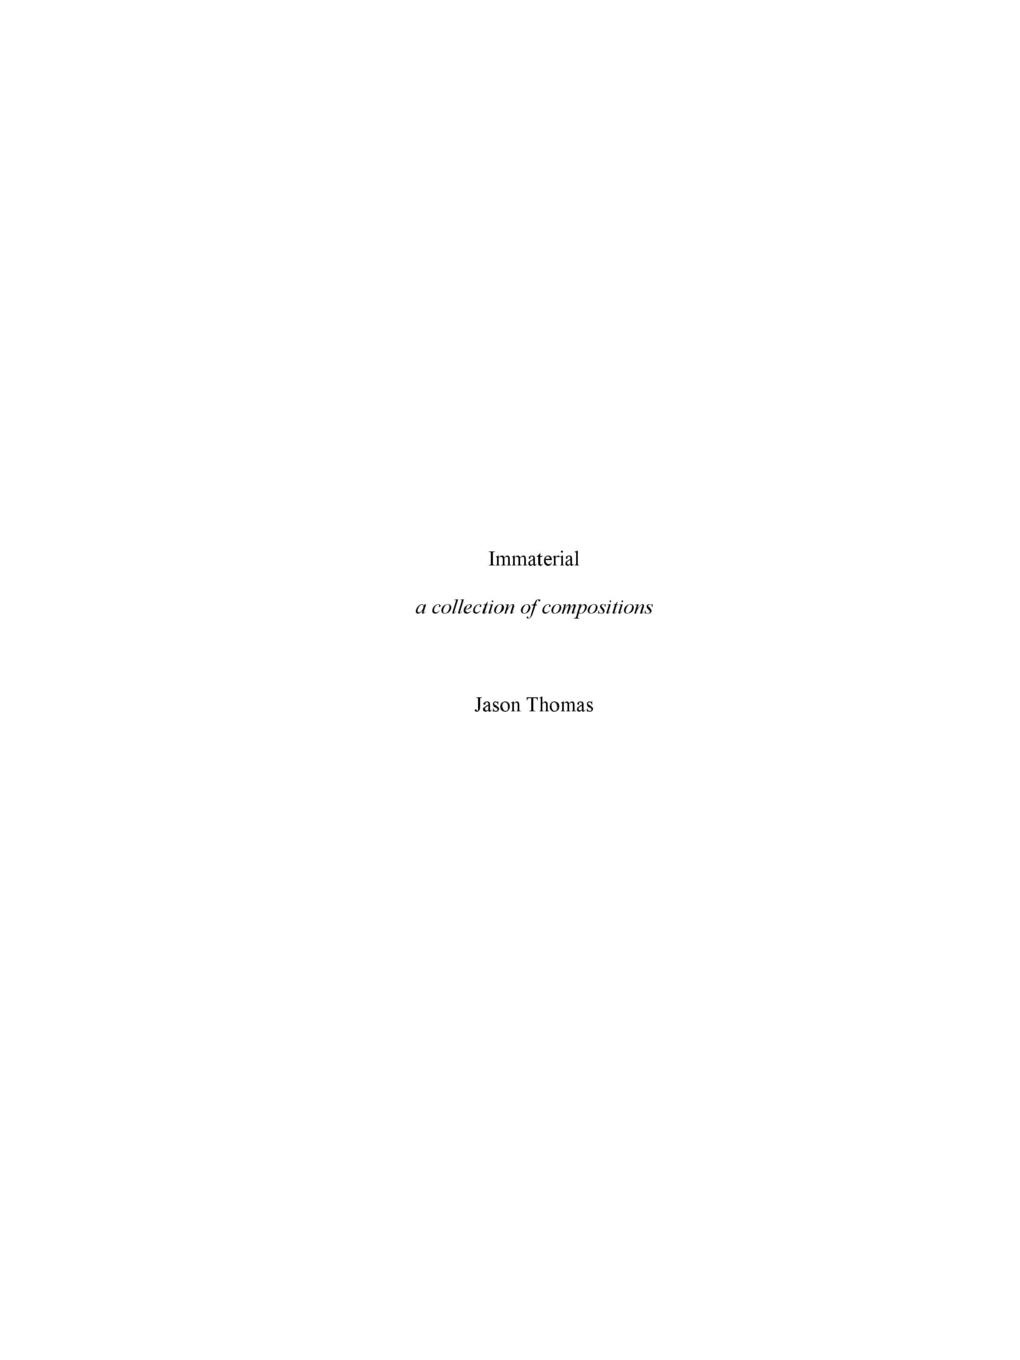 Jason Thomas Immaterial -- A Collection of Compositions towards improved compositions application of peer editing